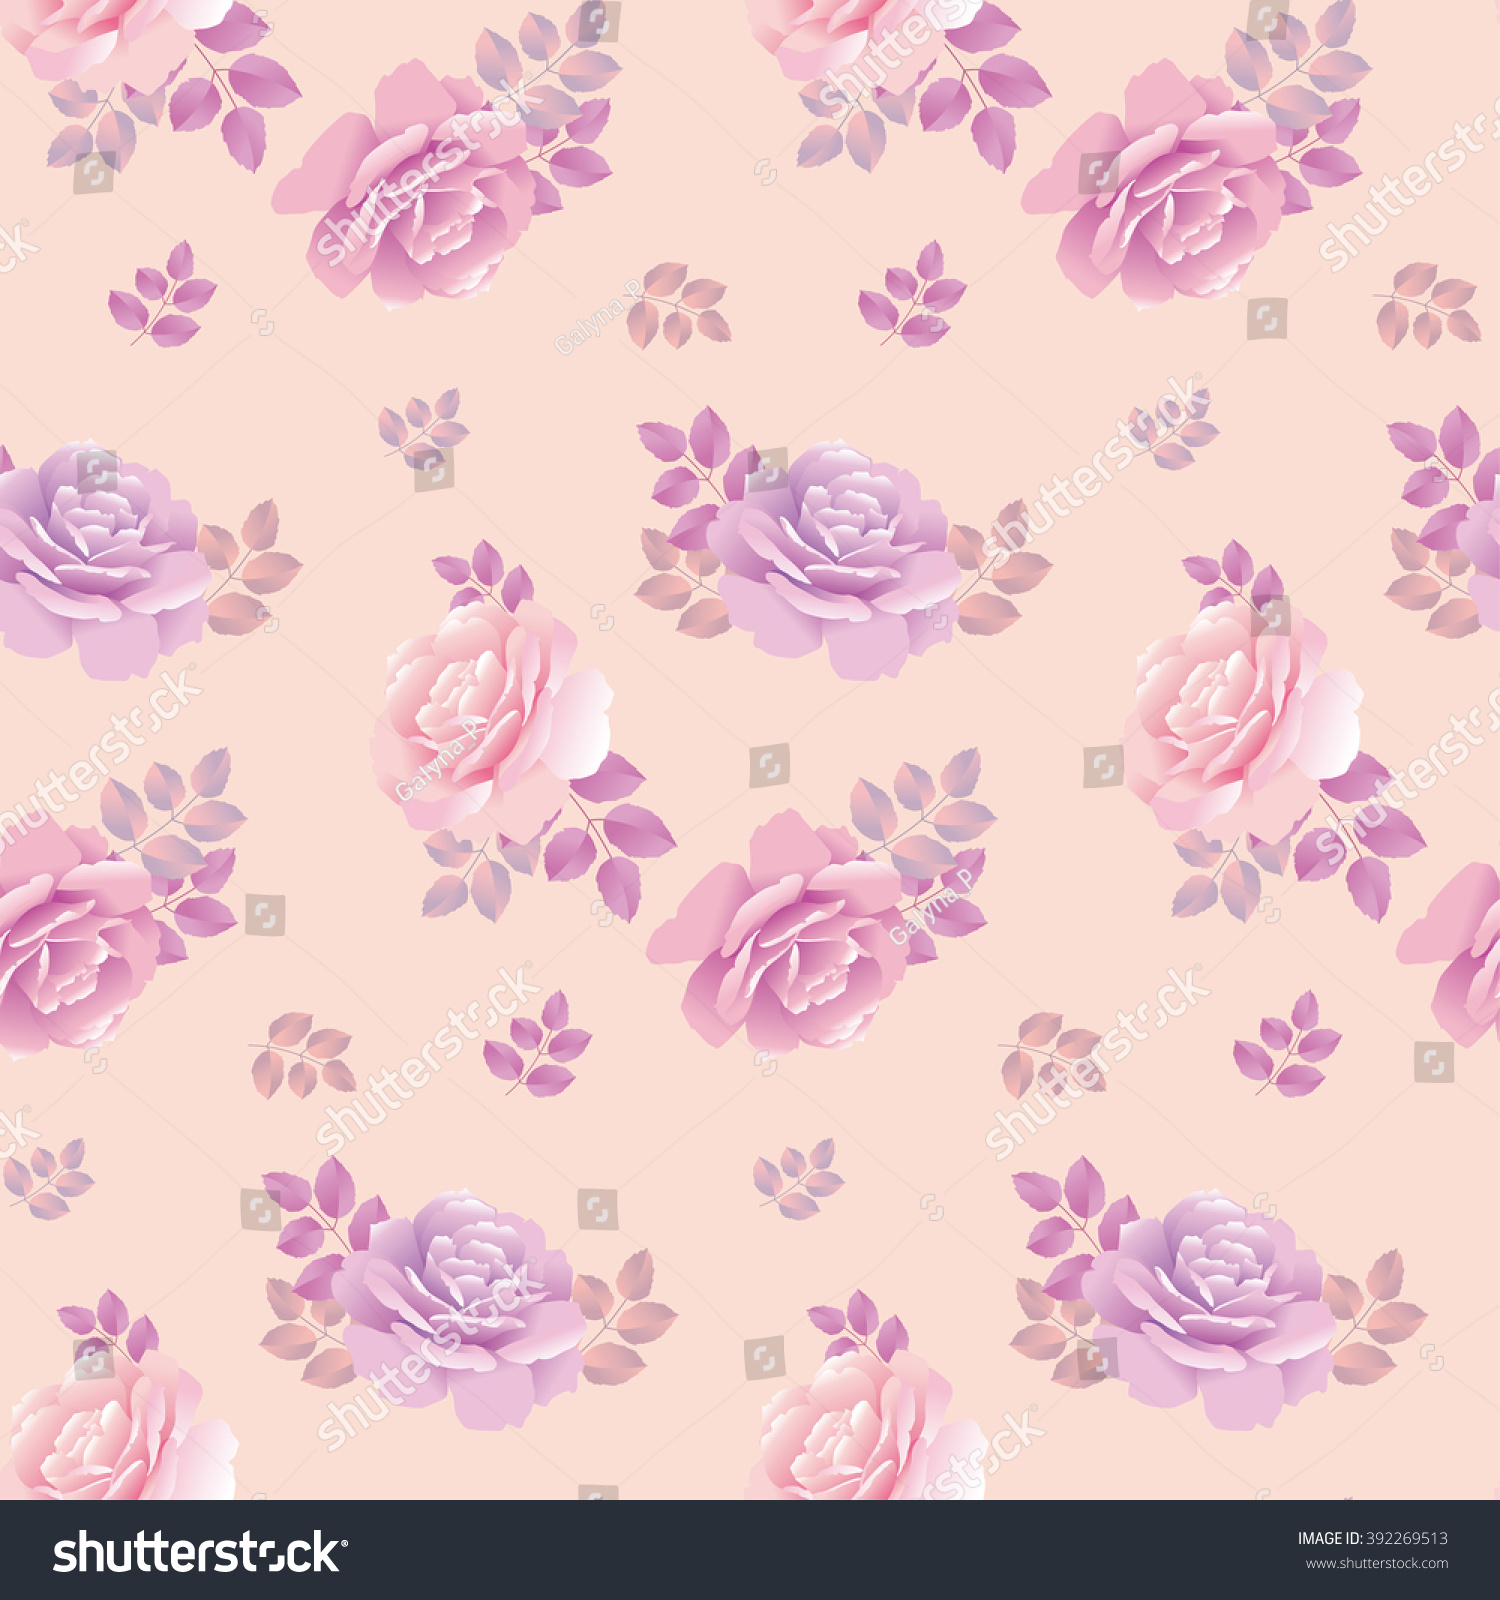 delicate rose pattern vector illustration